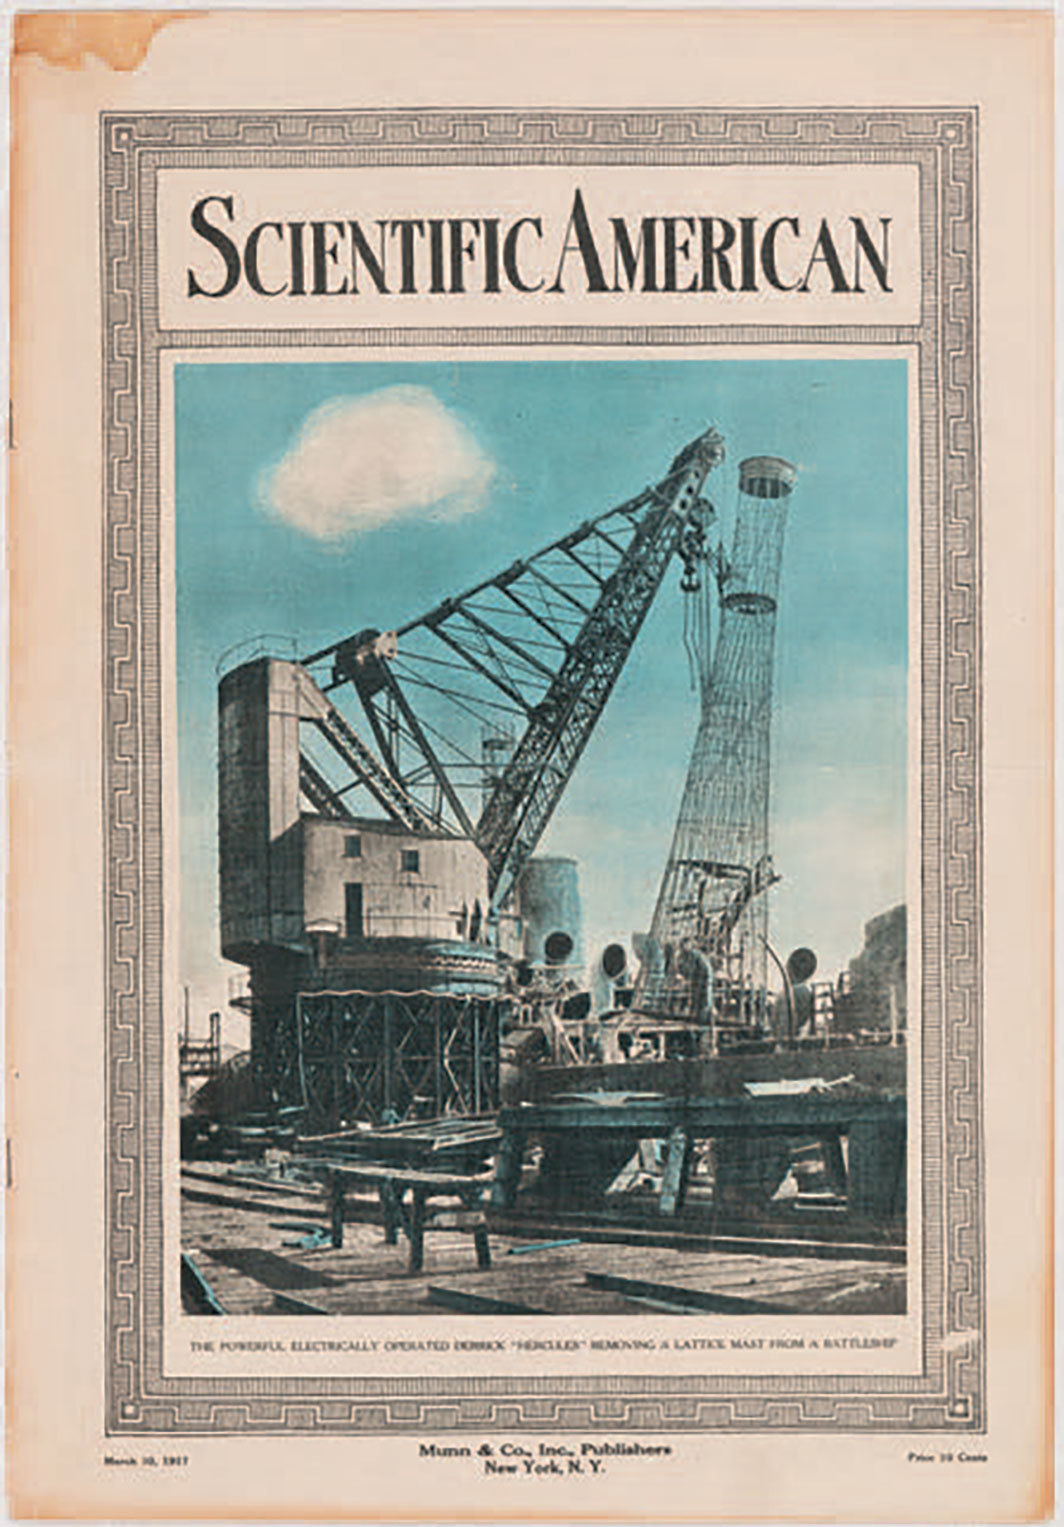 Cover of Scientific American, March 10, 1917.